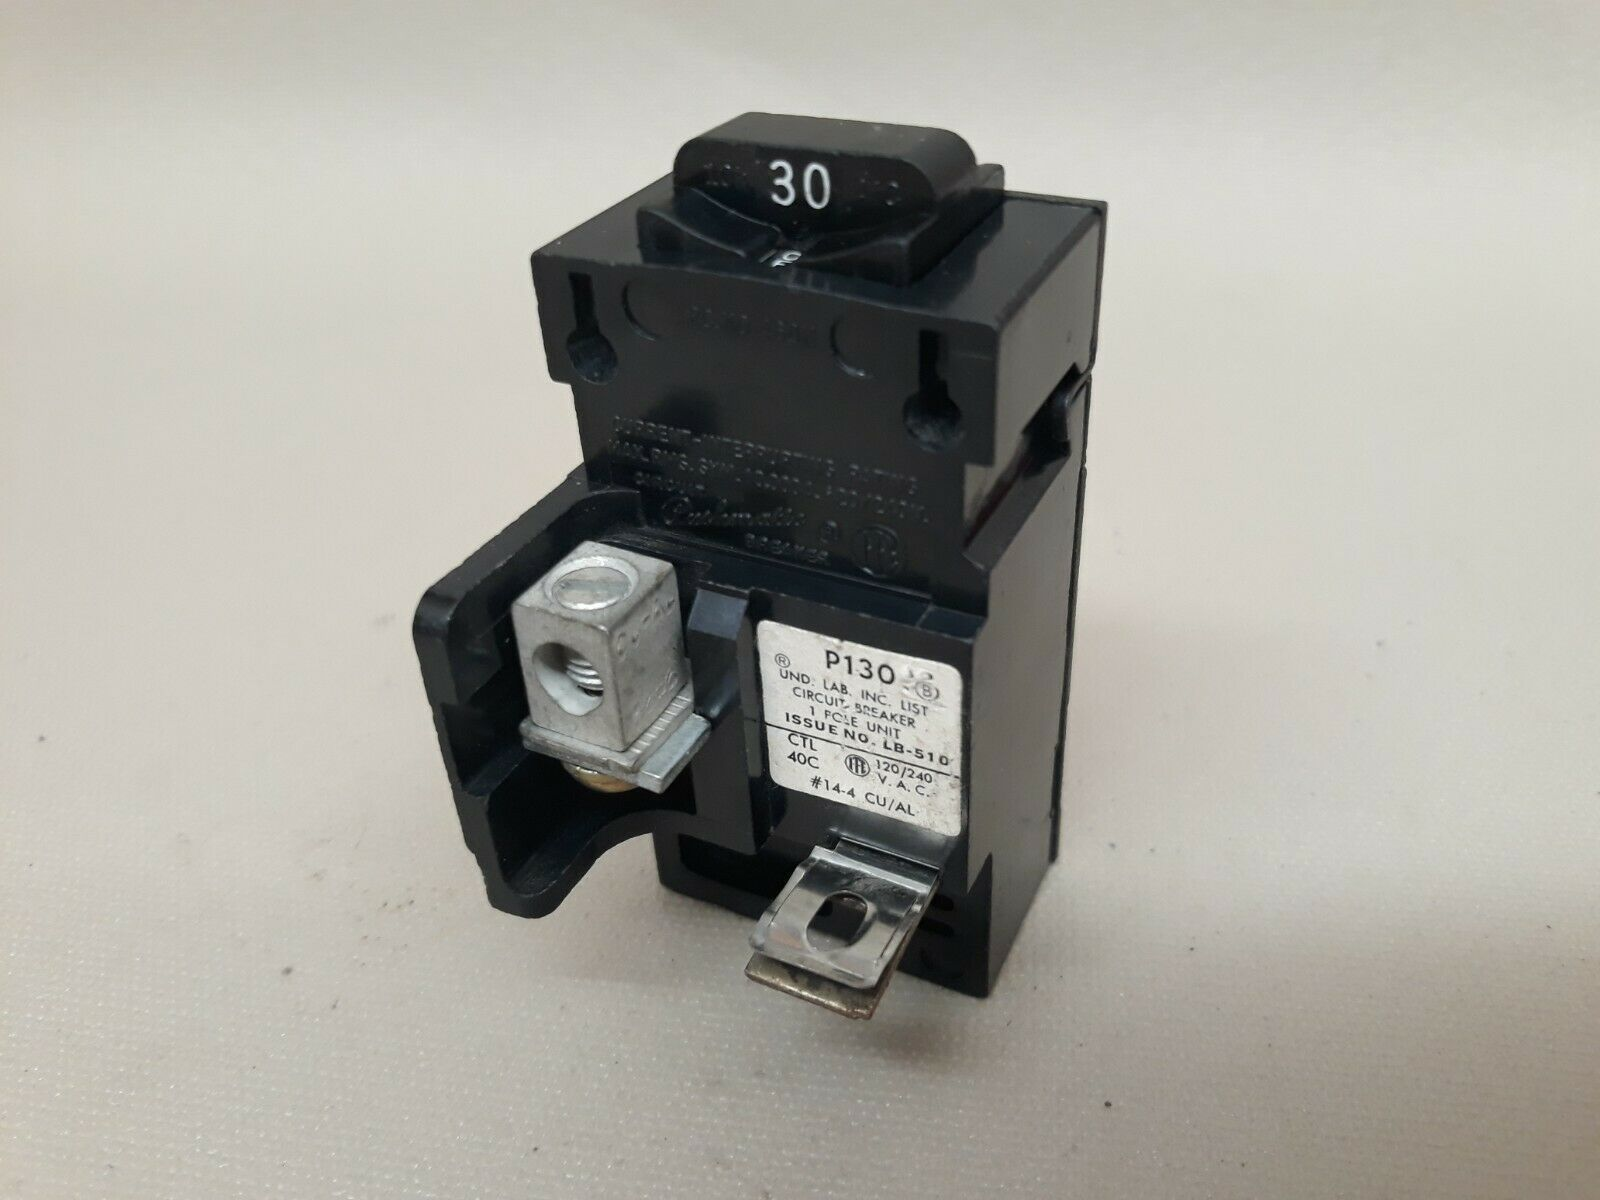 30 Amp Pushmatic ITE Gould Siemens 30A 120V Single or 1 Pole P130 Breaker Nice! - $22.95